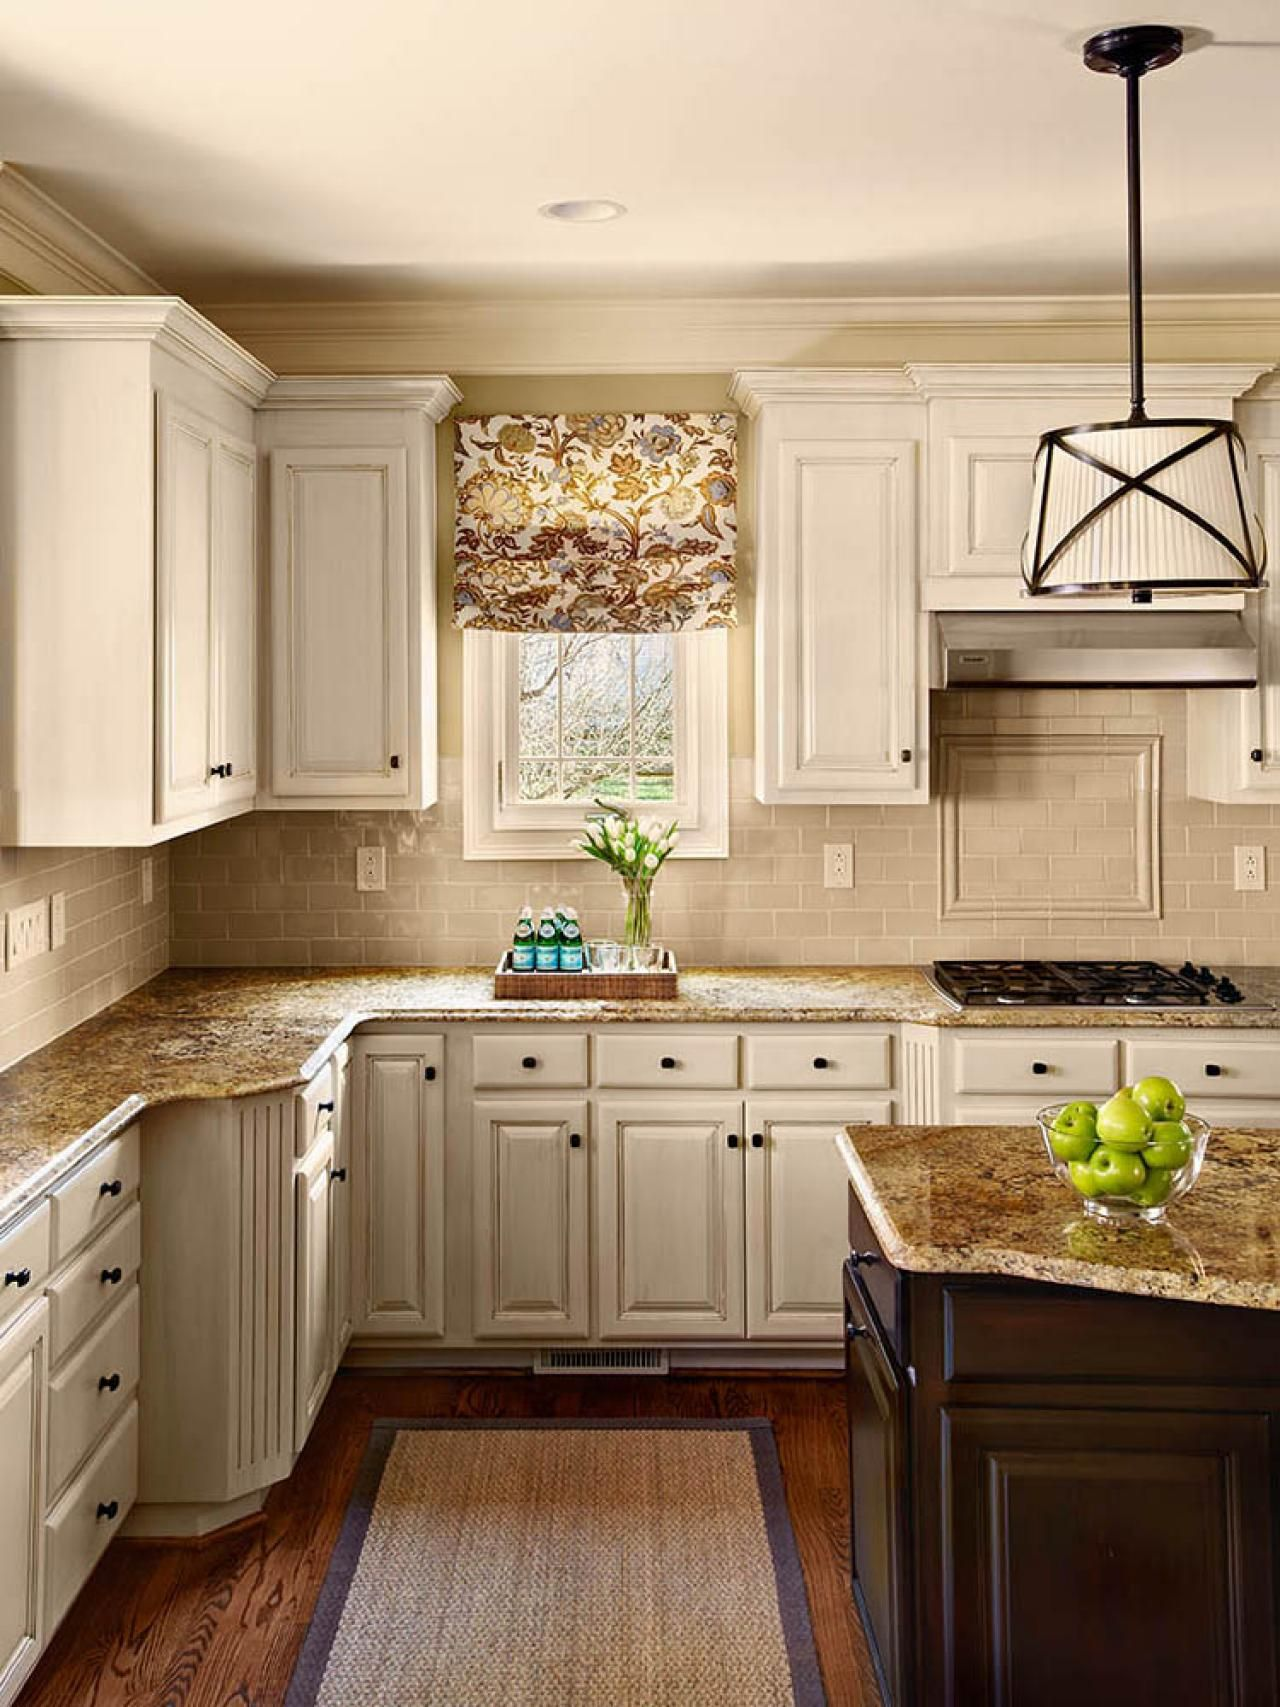 Pictures Of Kitchen Cabinets Ideas Inspiration From Hgtv Design With Islands Backsplashes